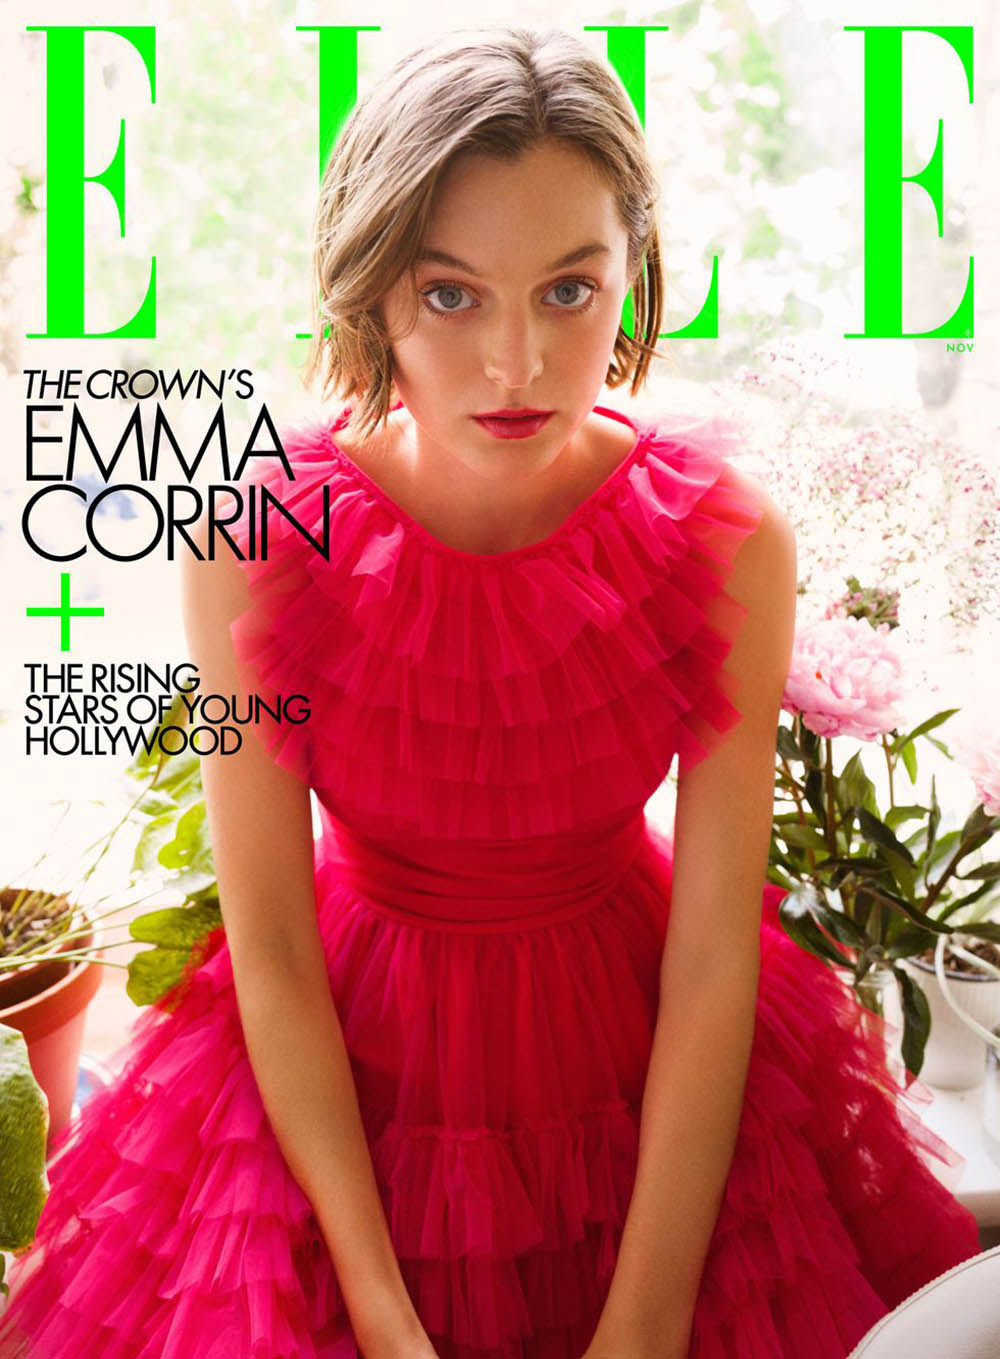 Emma Corrin covers Elle US November 2020 by Greg Williams